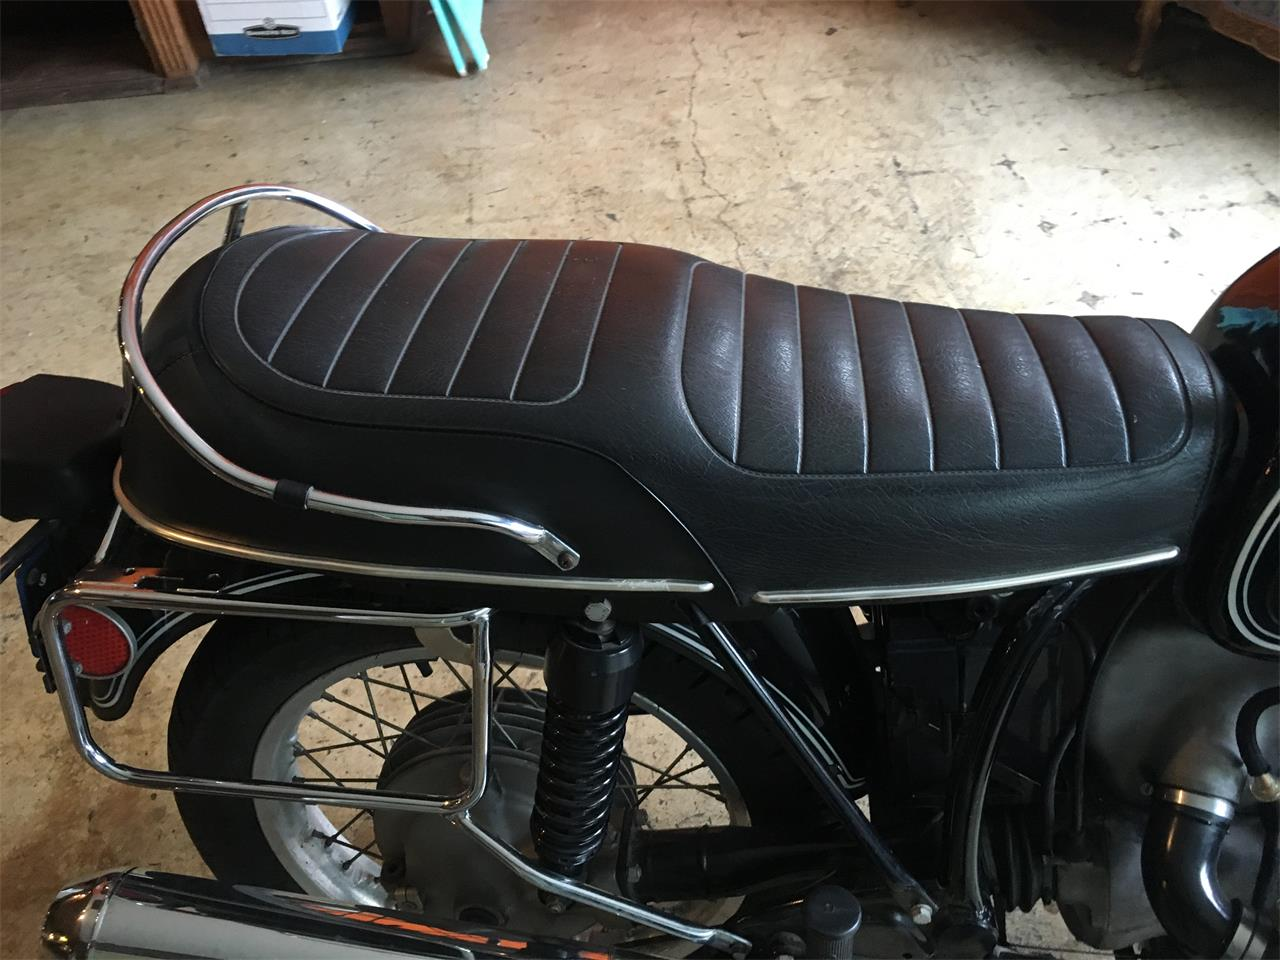 1975 BMW Motorcycle (CC-1221099) for sale in oakland, California